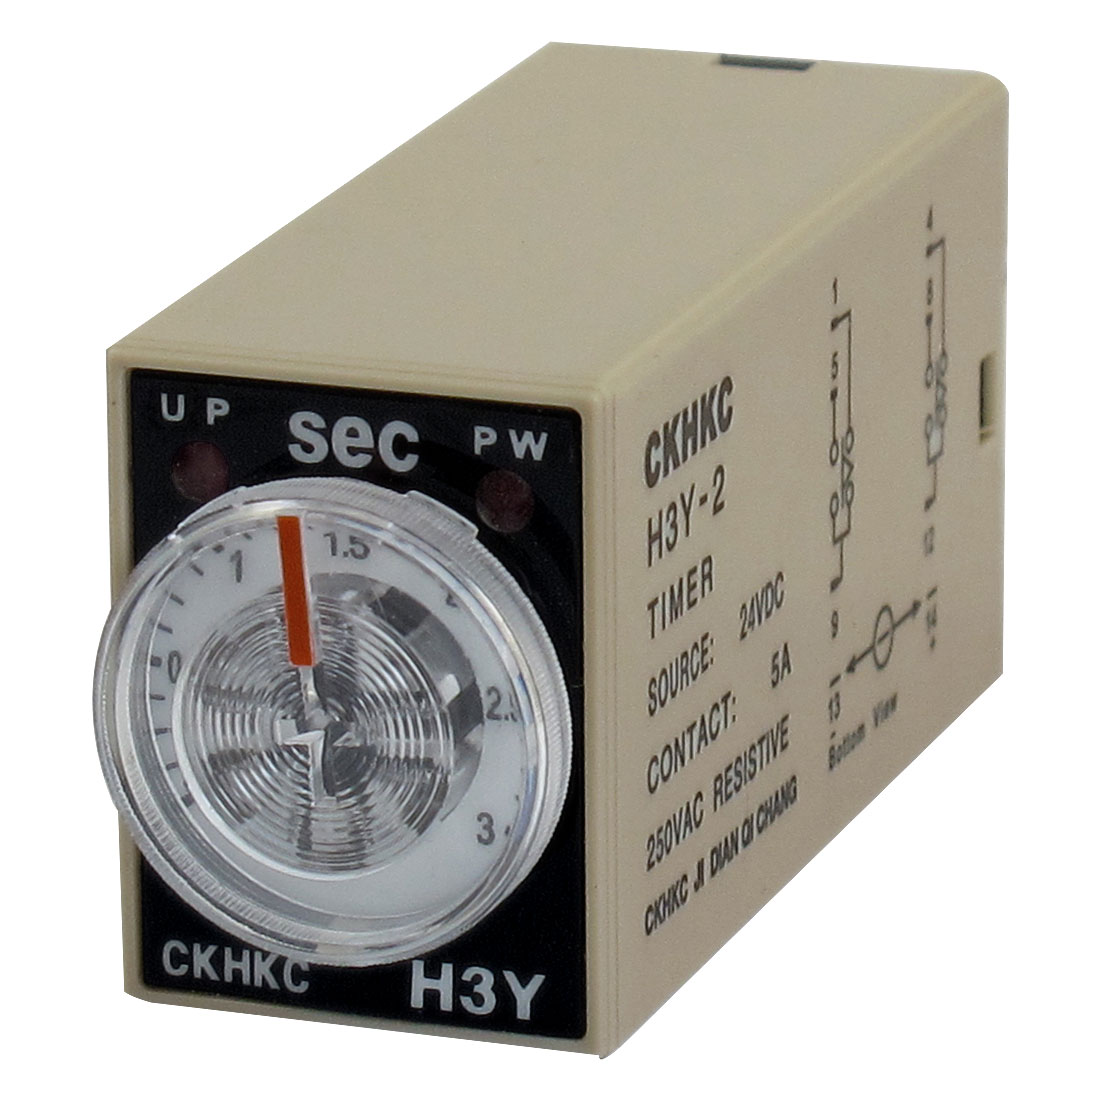 H3Y-2 8-Pin Plug in 0-3s Delay Timing Time Relay 24VDC w LED Indicator